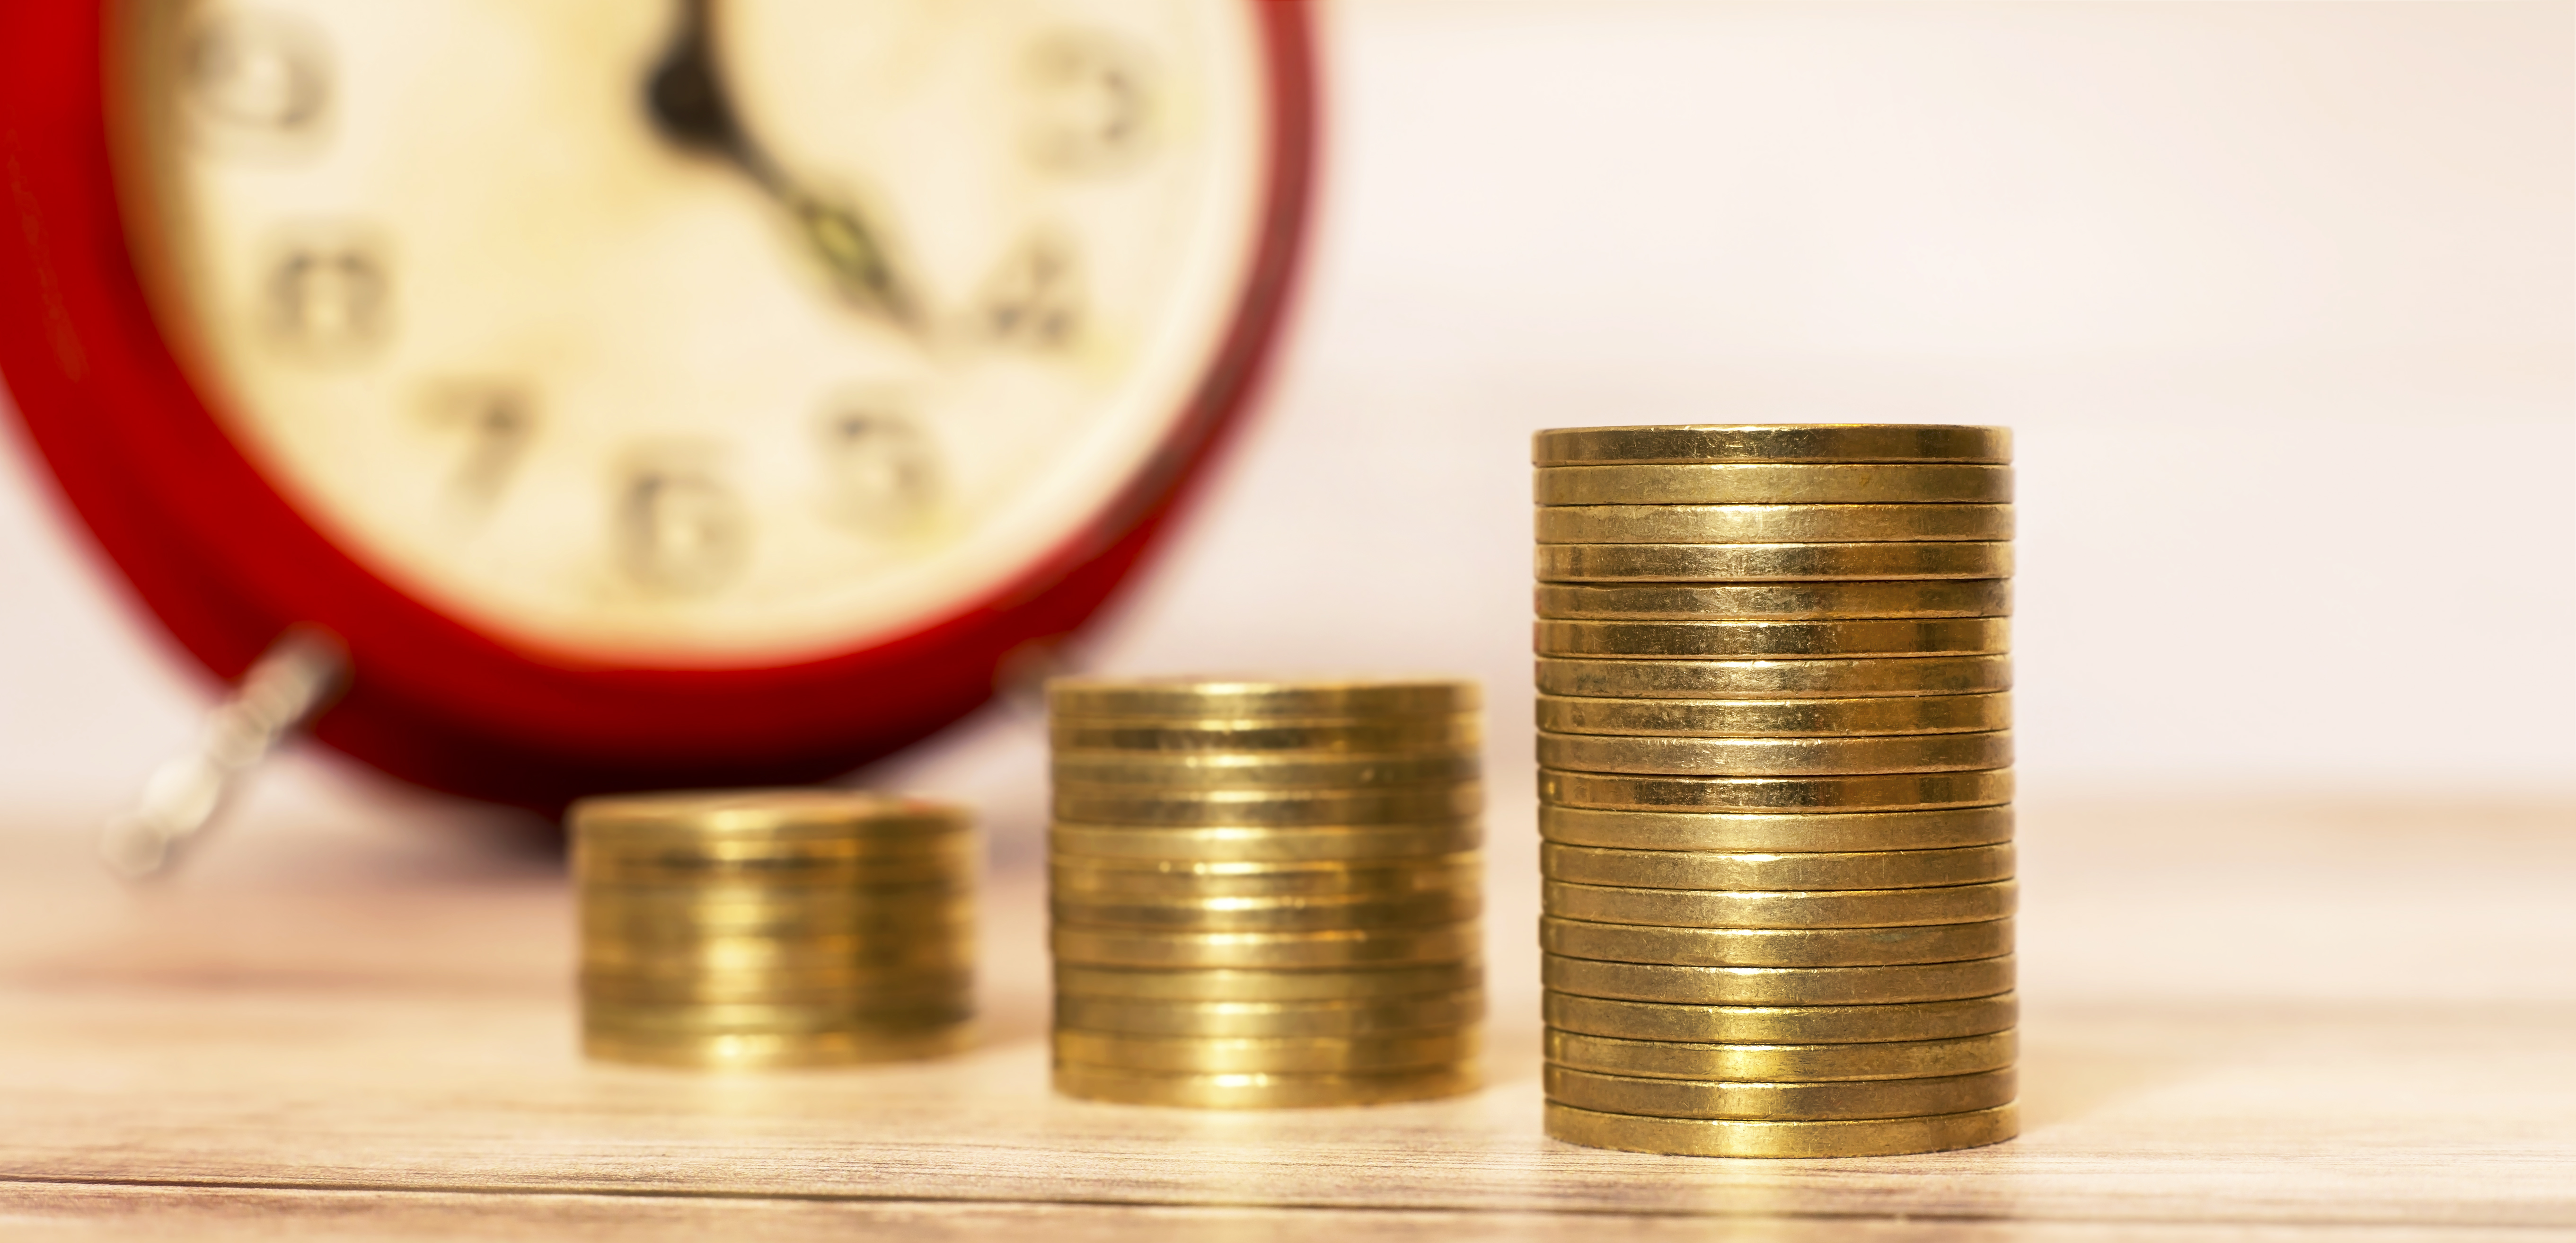 time-to-savings-money-coins-with-alarm-clock-PCUPB39